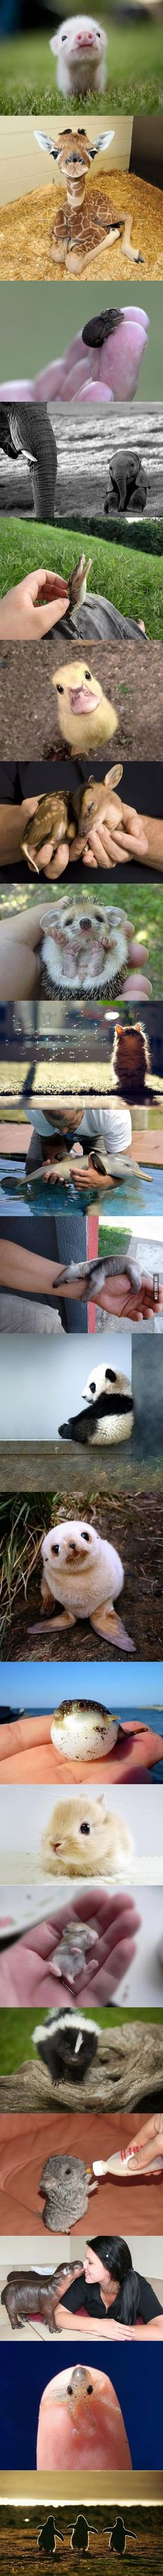 9GAG - Some cute animals